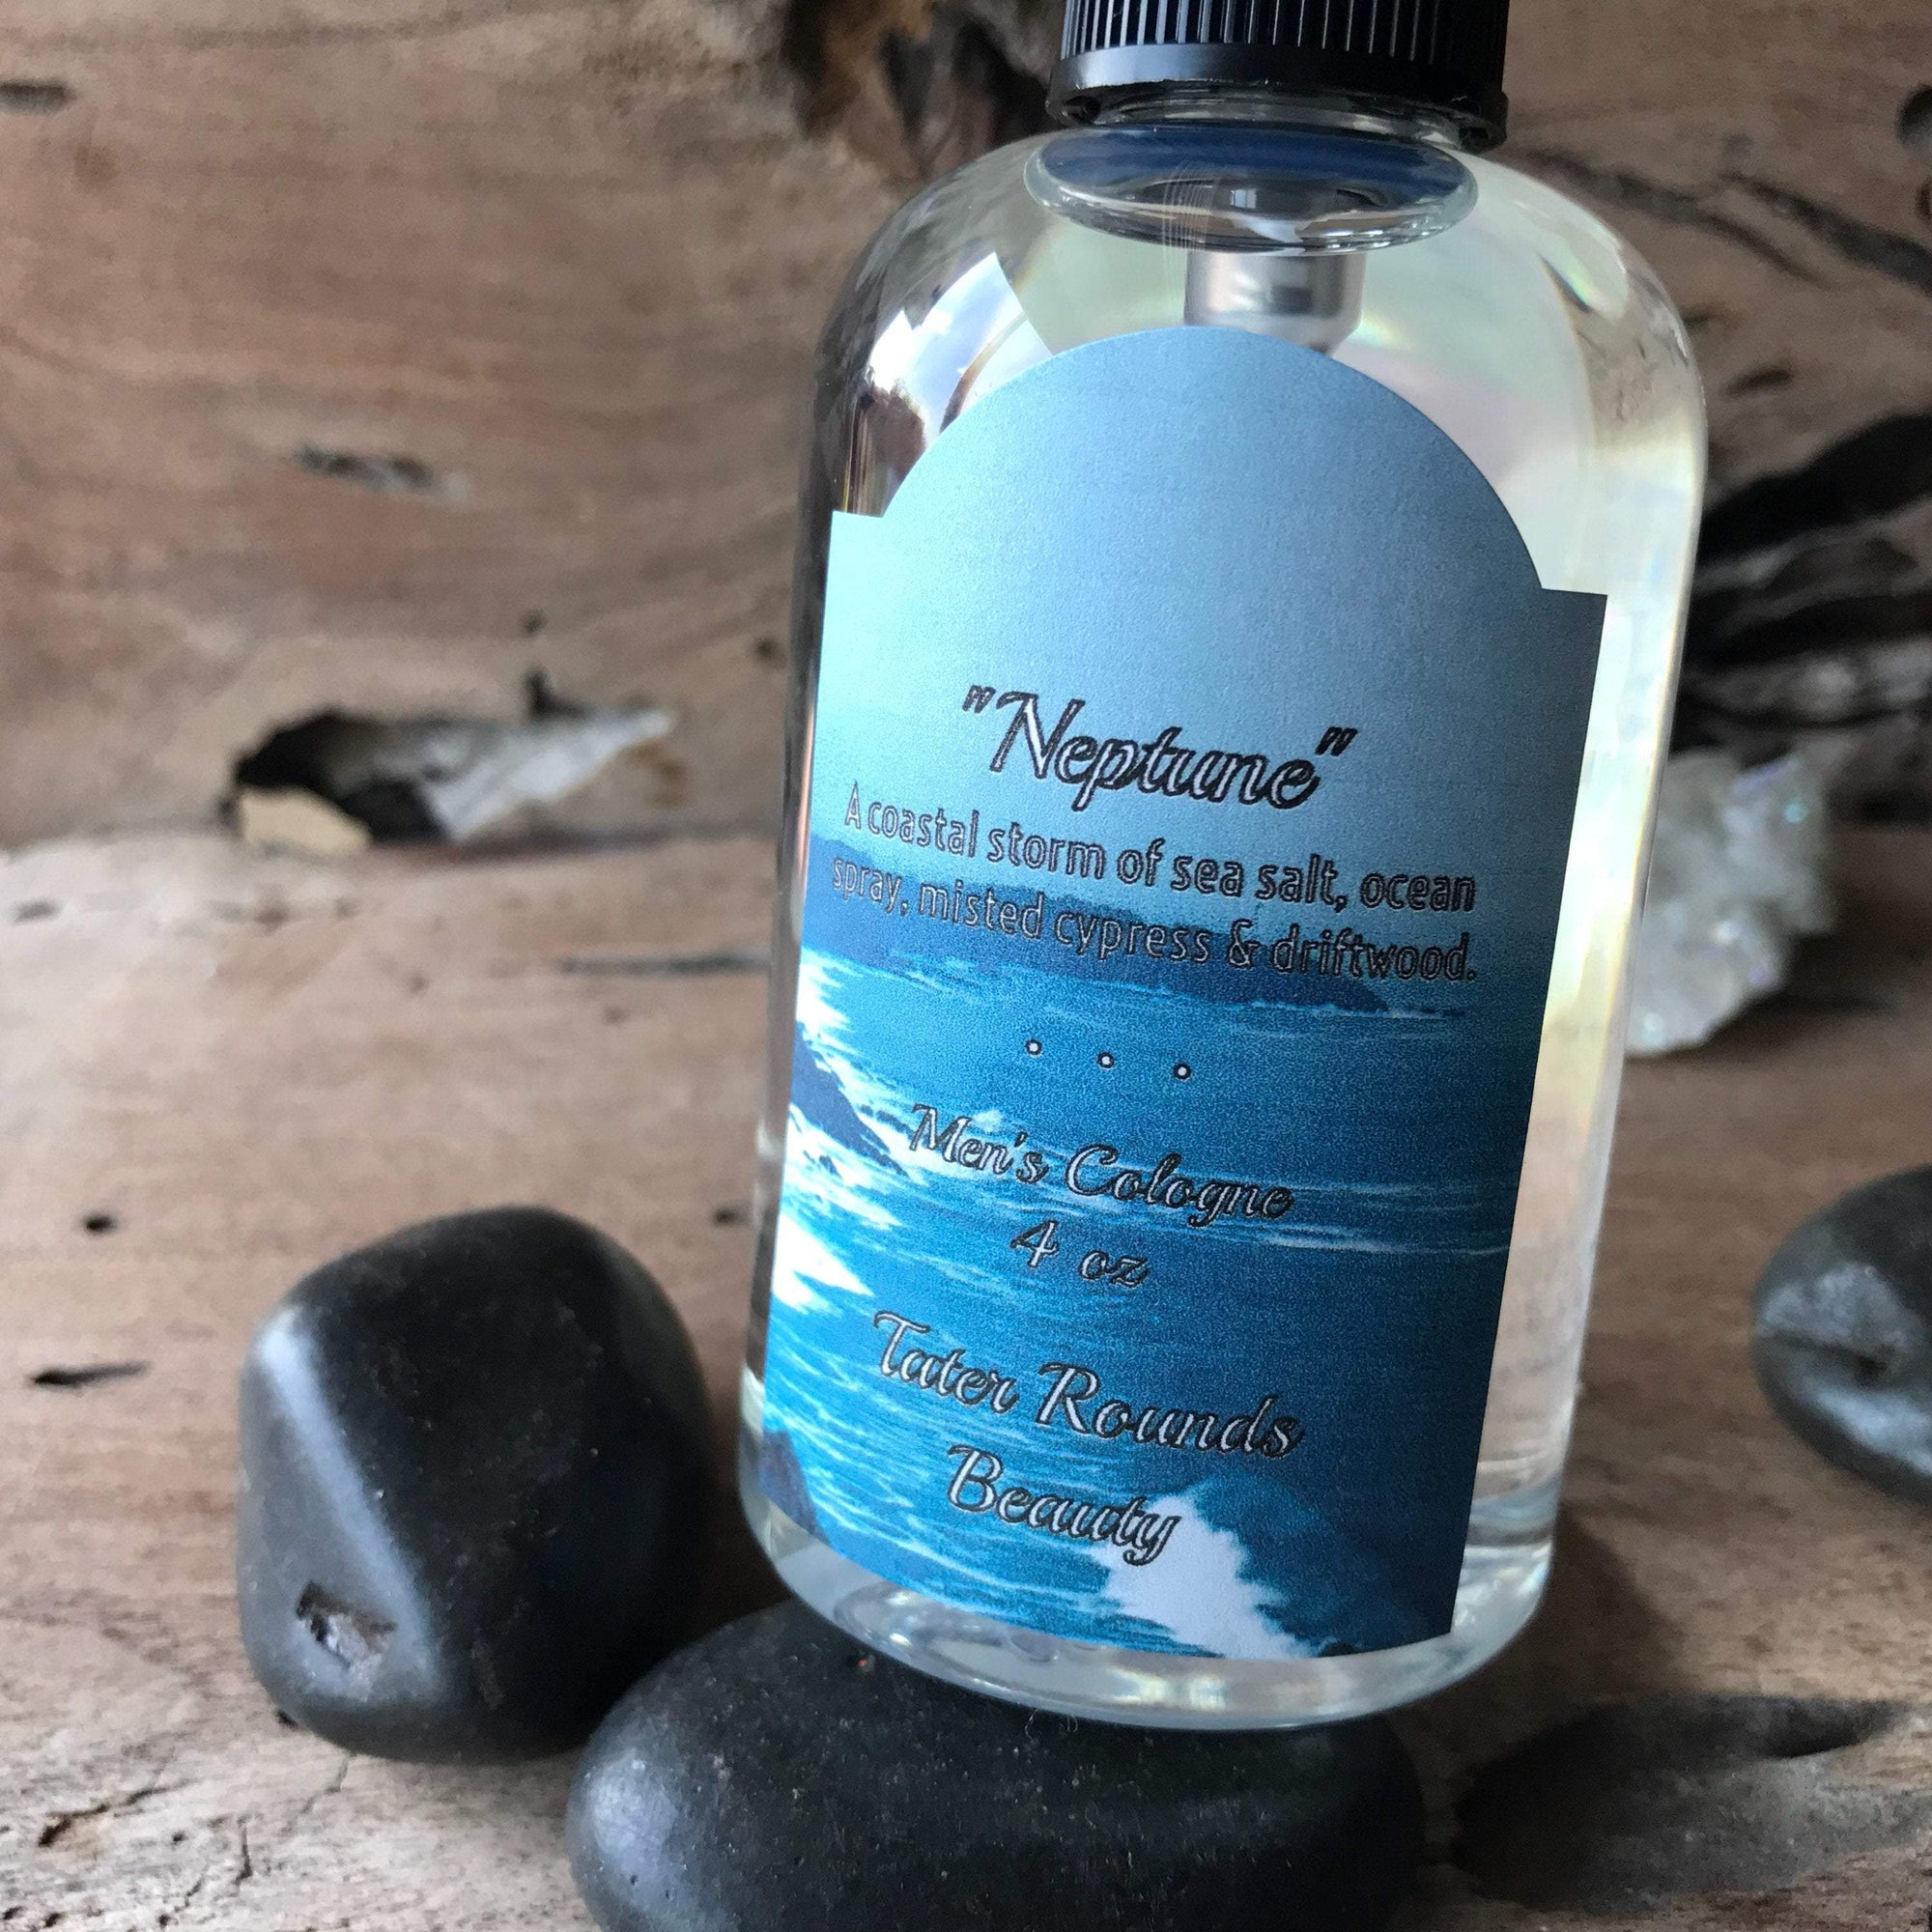 God of Sea Neptune - Men's Cologne and Perfume Ancient Treasures Ancientreasures Viking Odin Thor Mjolnir Celtic Ancient Egypt Norse Norse Mythology